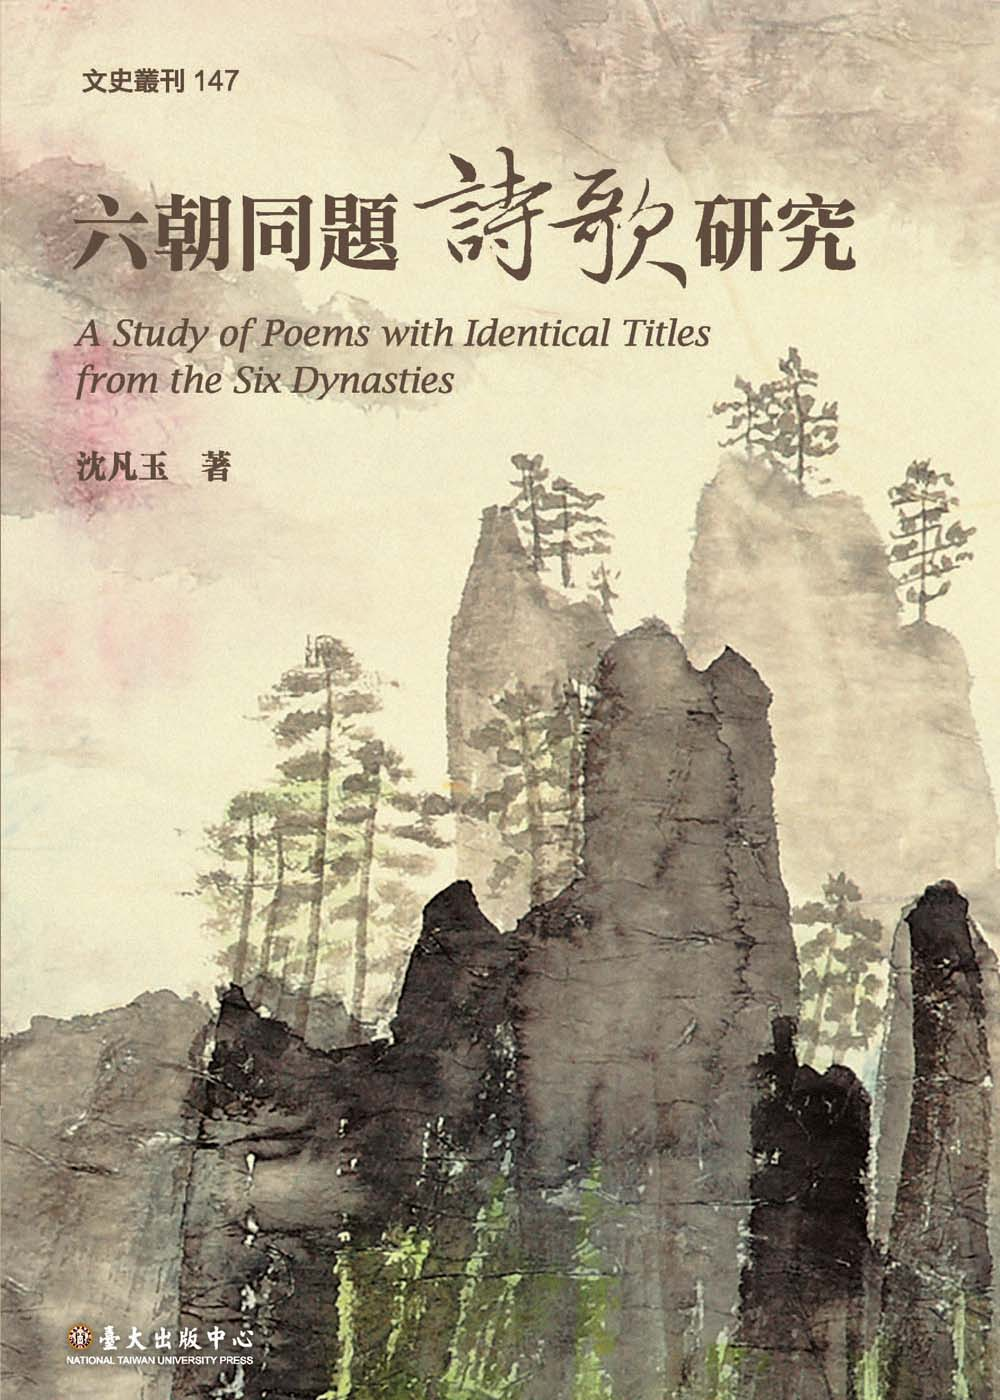 A Study of Poems with Identical Titles from the Six Dynasties